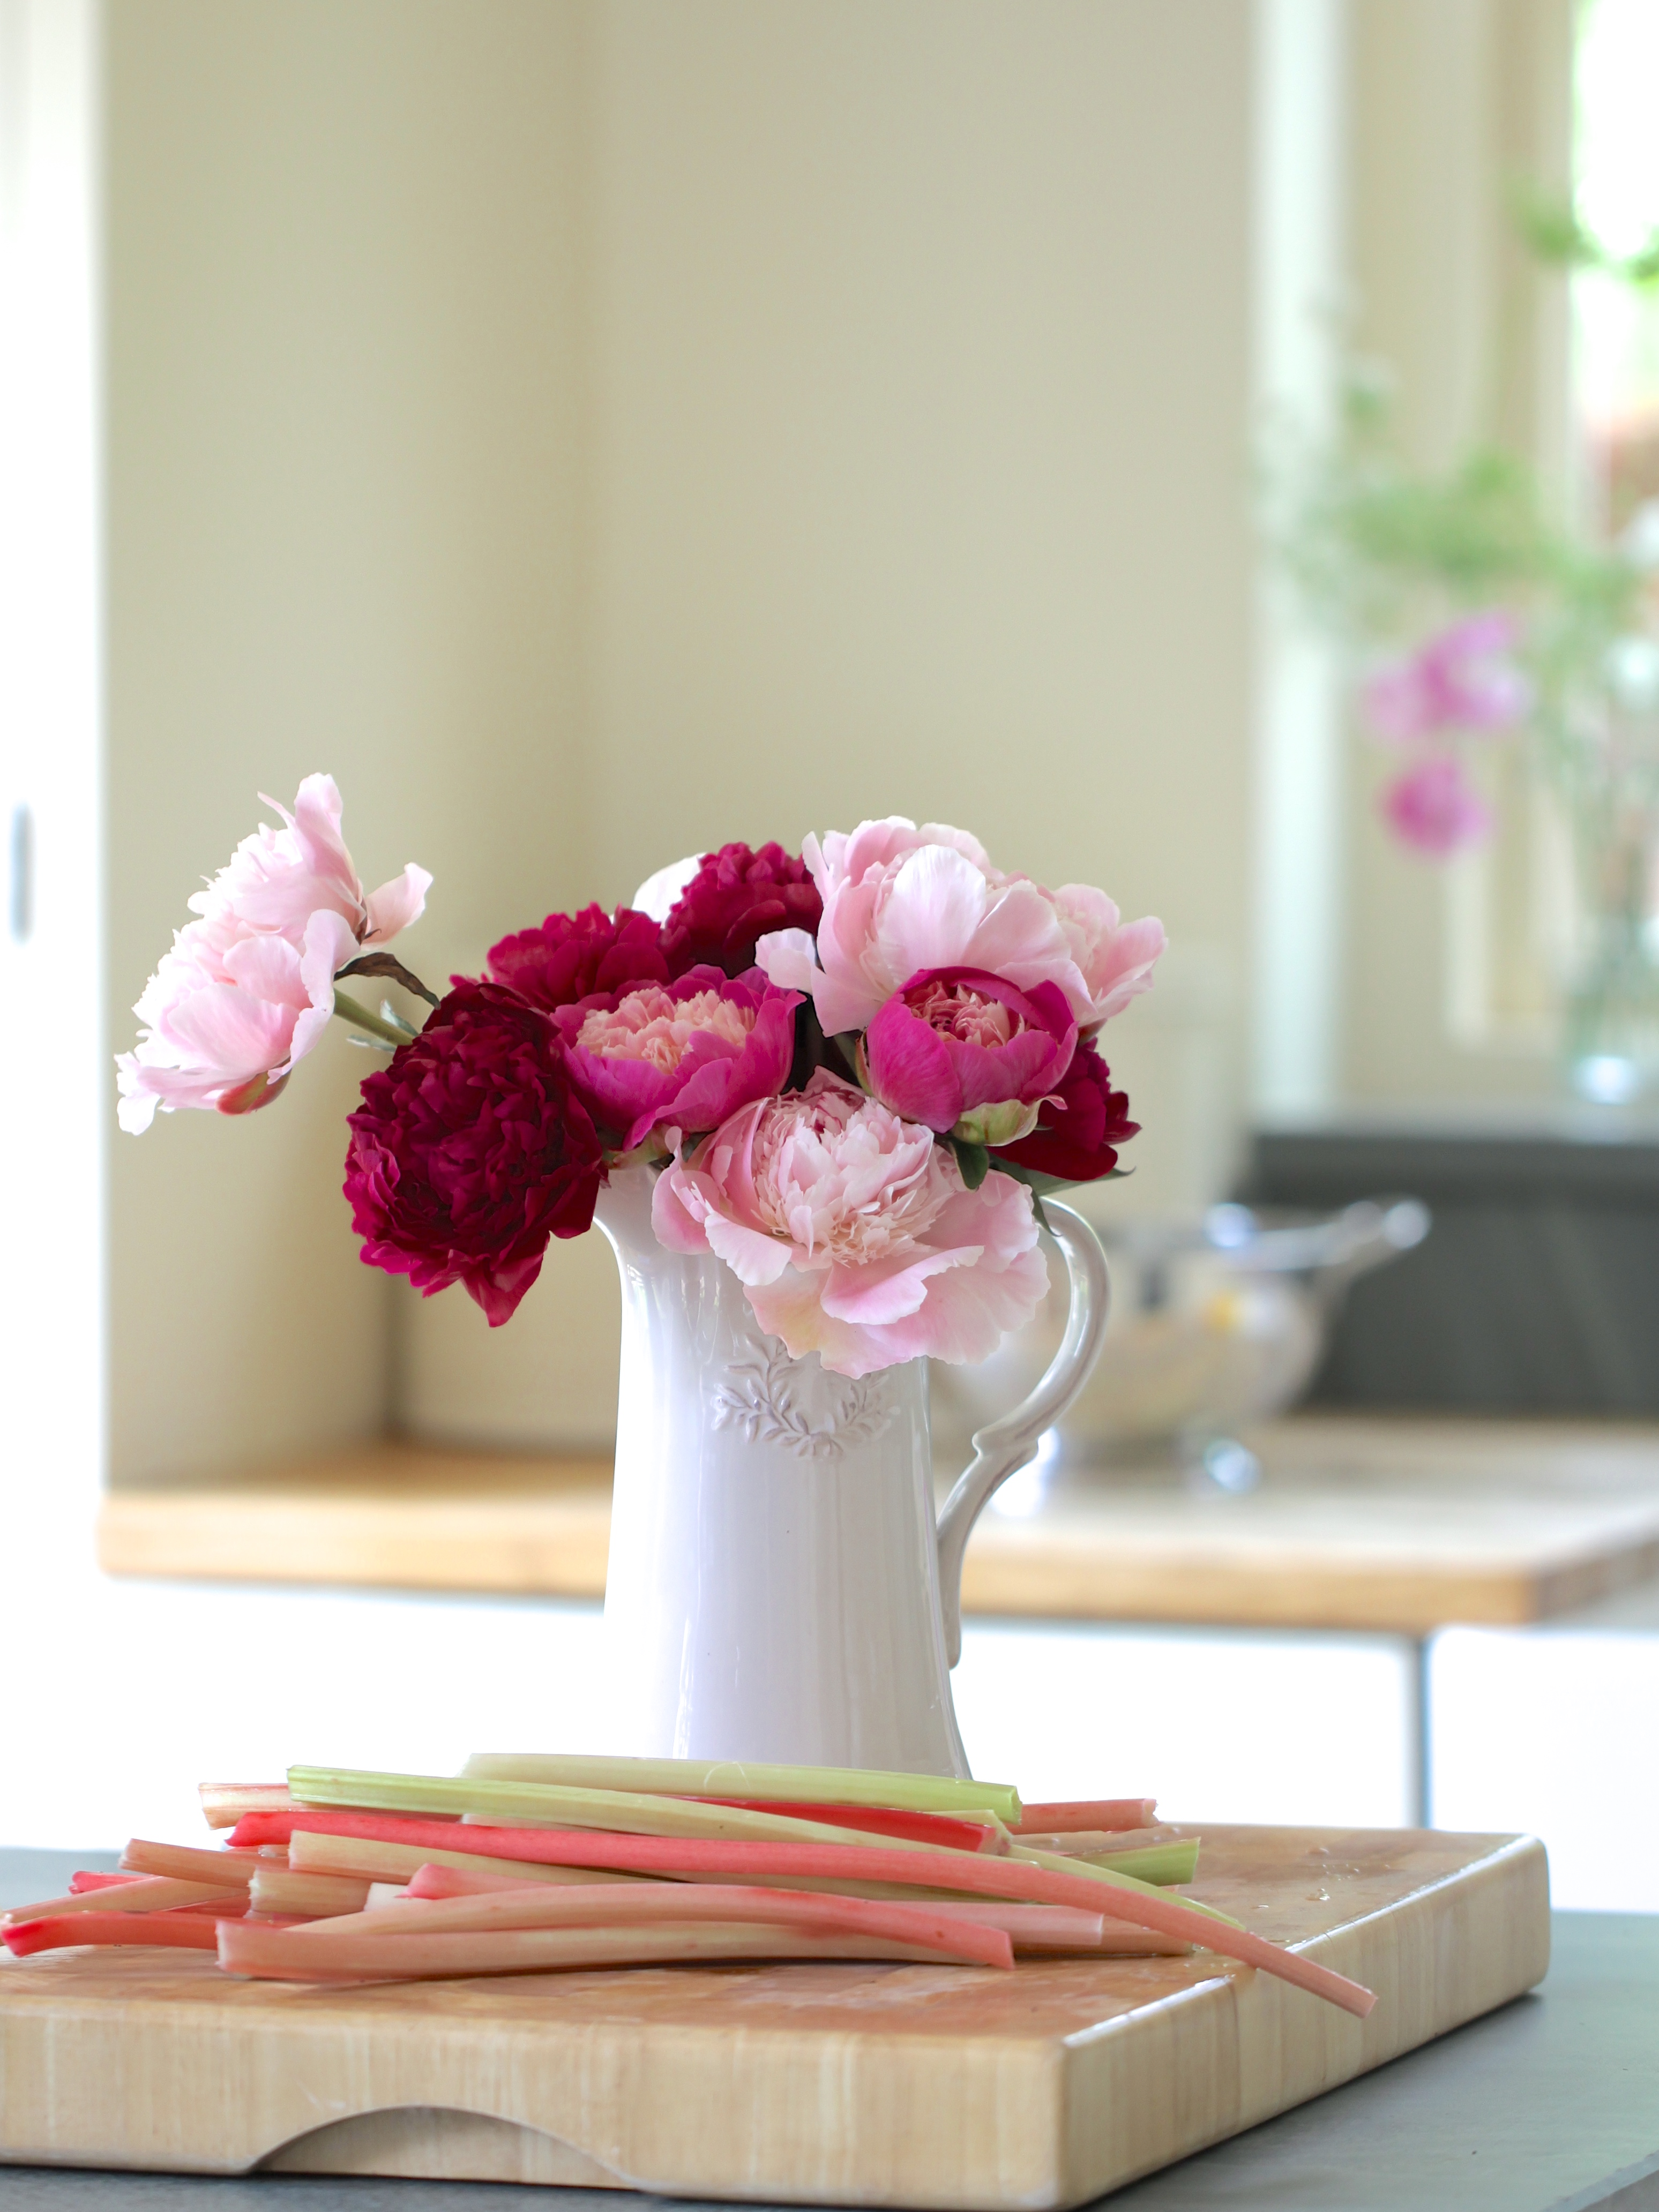 In a vase on monday my perfect peoniesindulging floral passions jug of peonies reviewsmspy